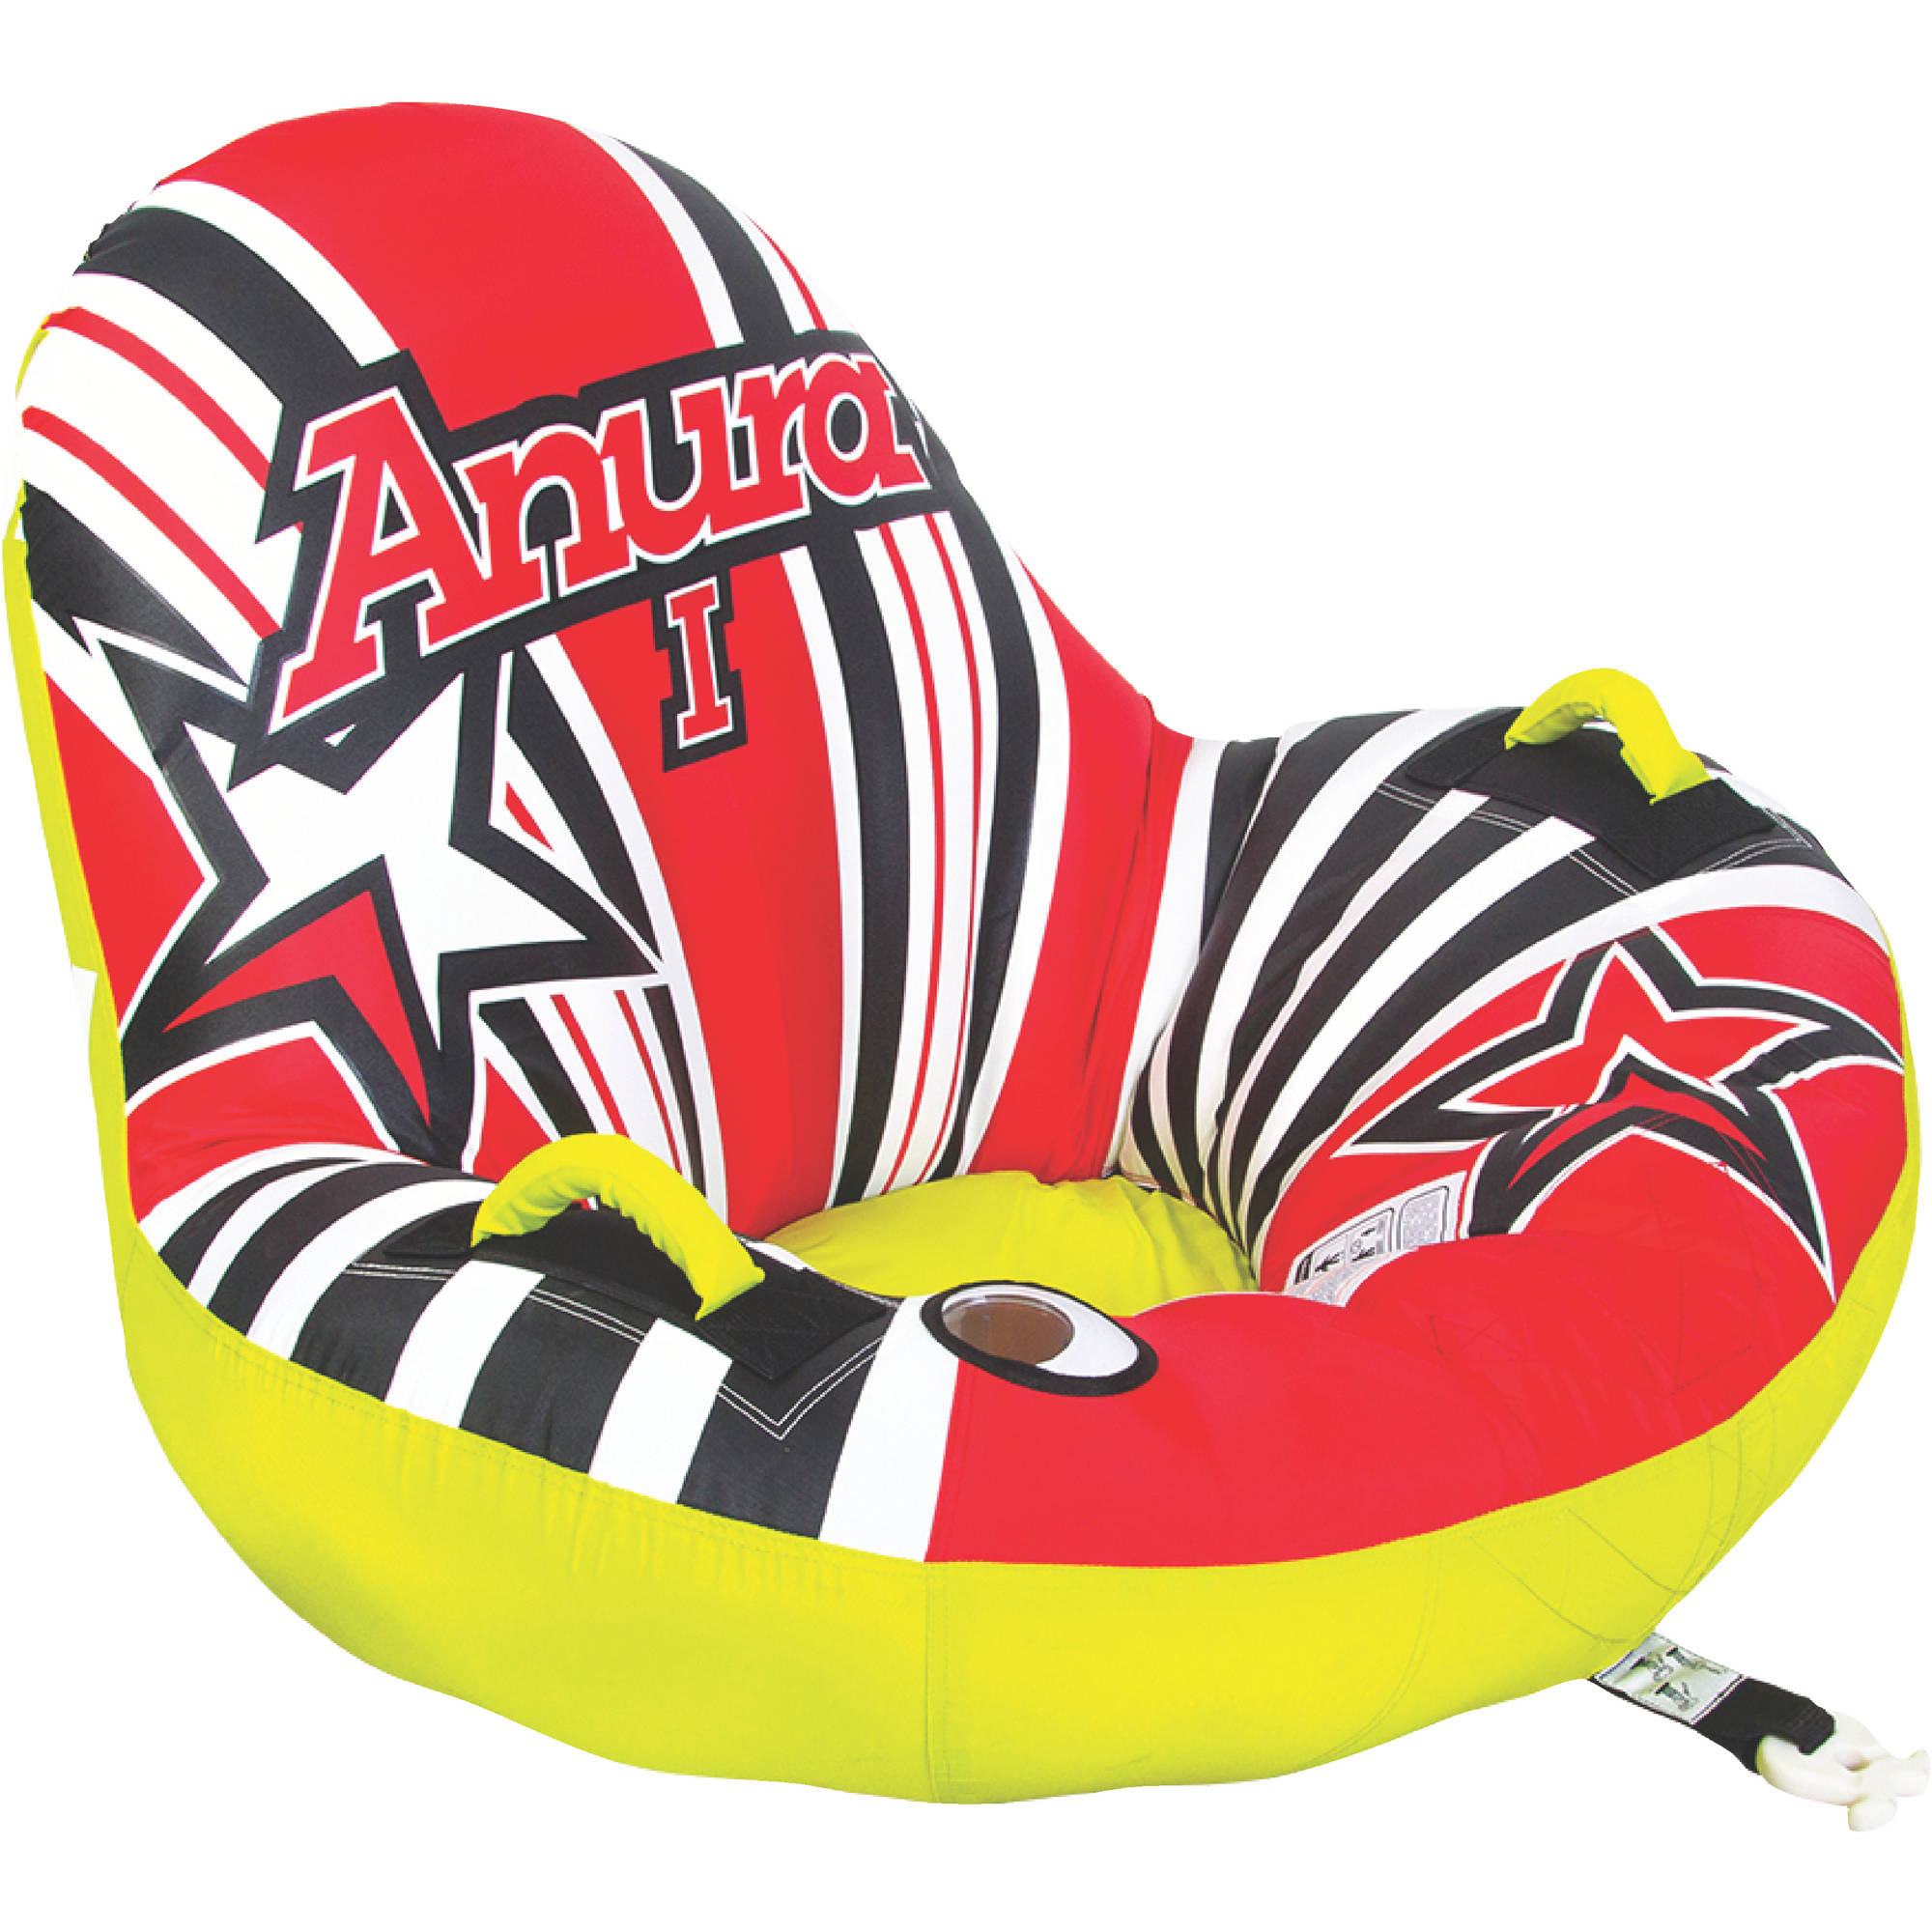 Jobe 230116004 Anura 1 Person Inflatable Towable by Jobe Sport International